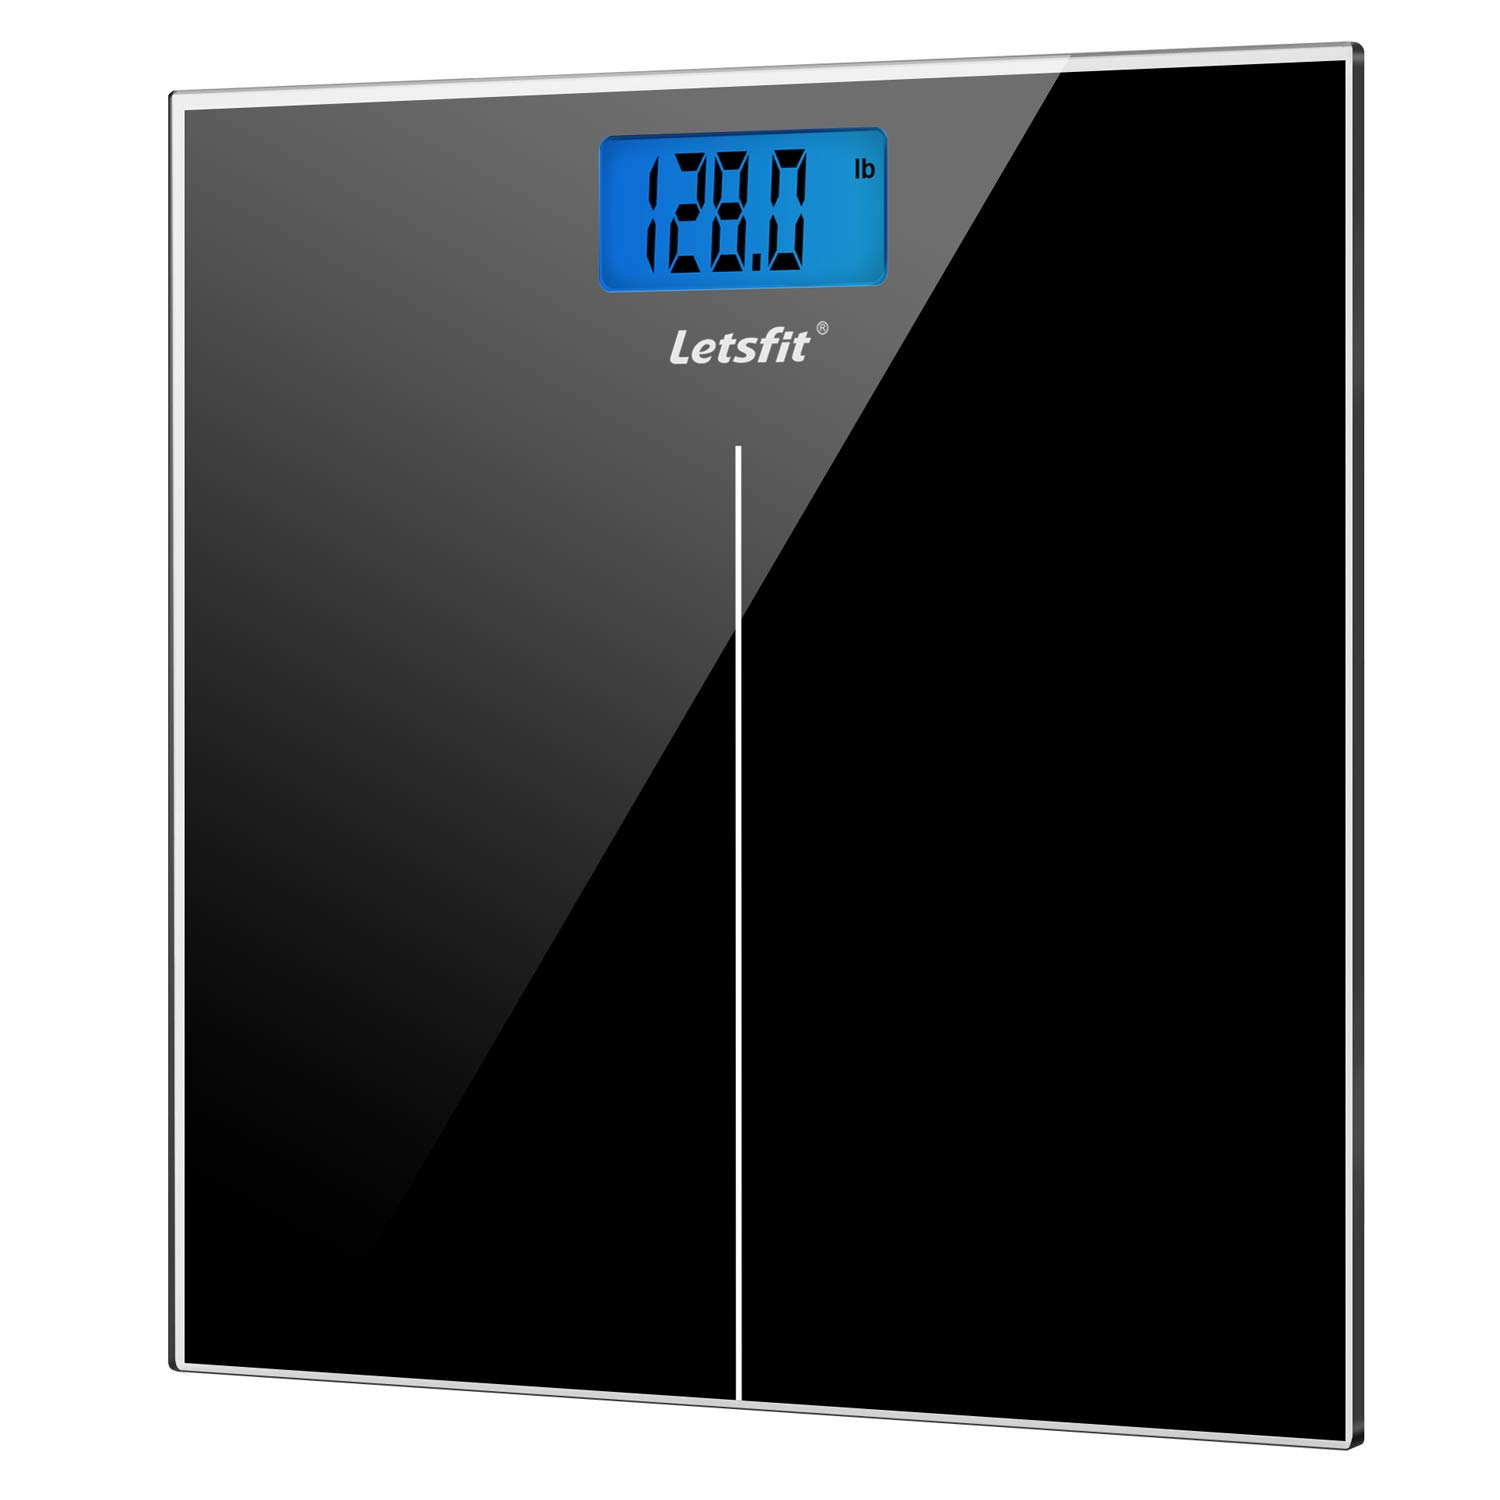 Letsfit Digital Body Weight Scale, Bathroom Scale with Large Backlit Display, Step-On Technology, High accuracy 0.1lb…